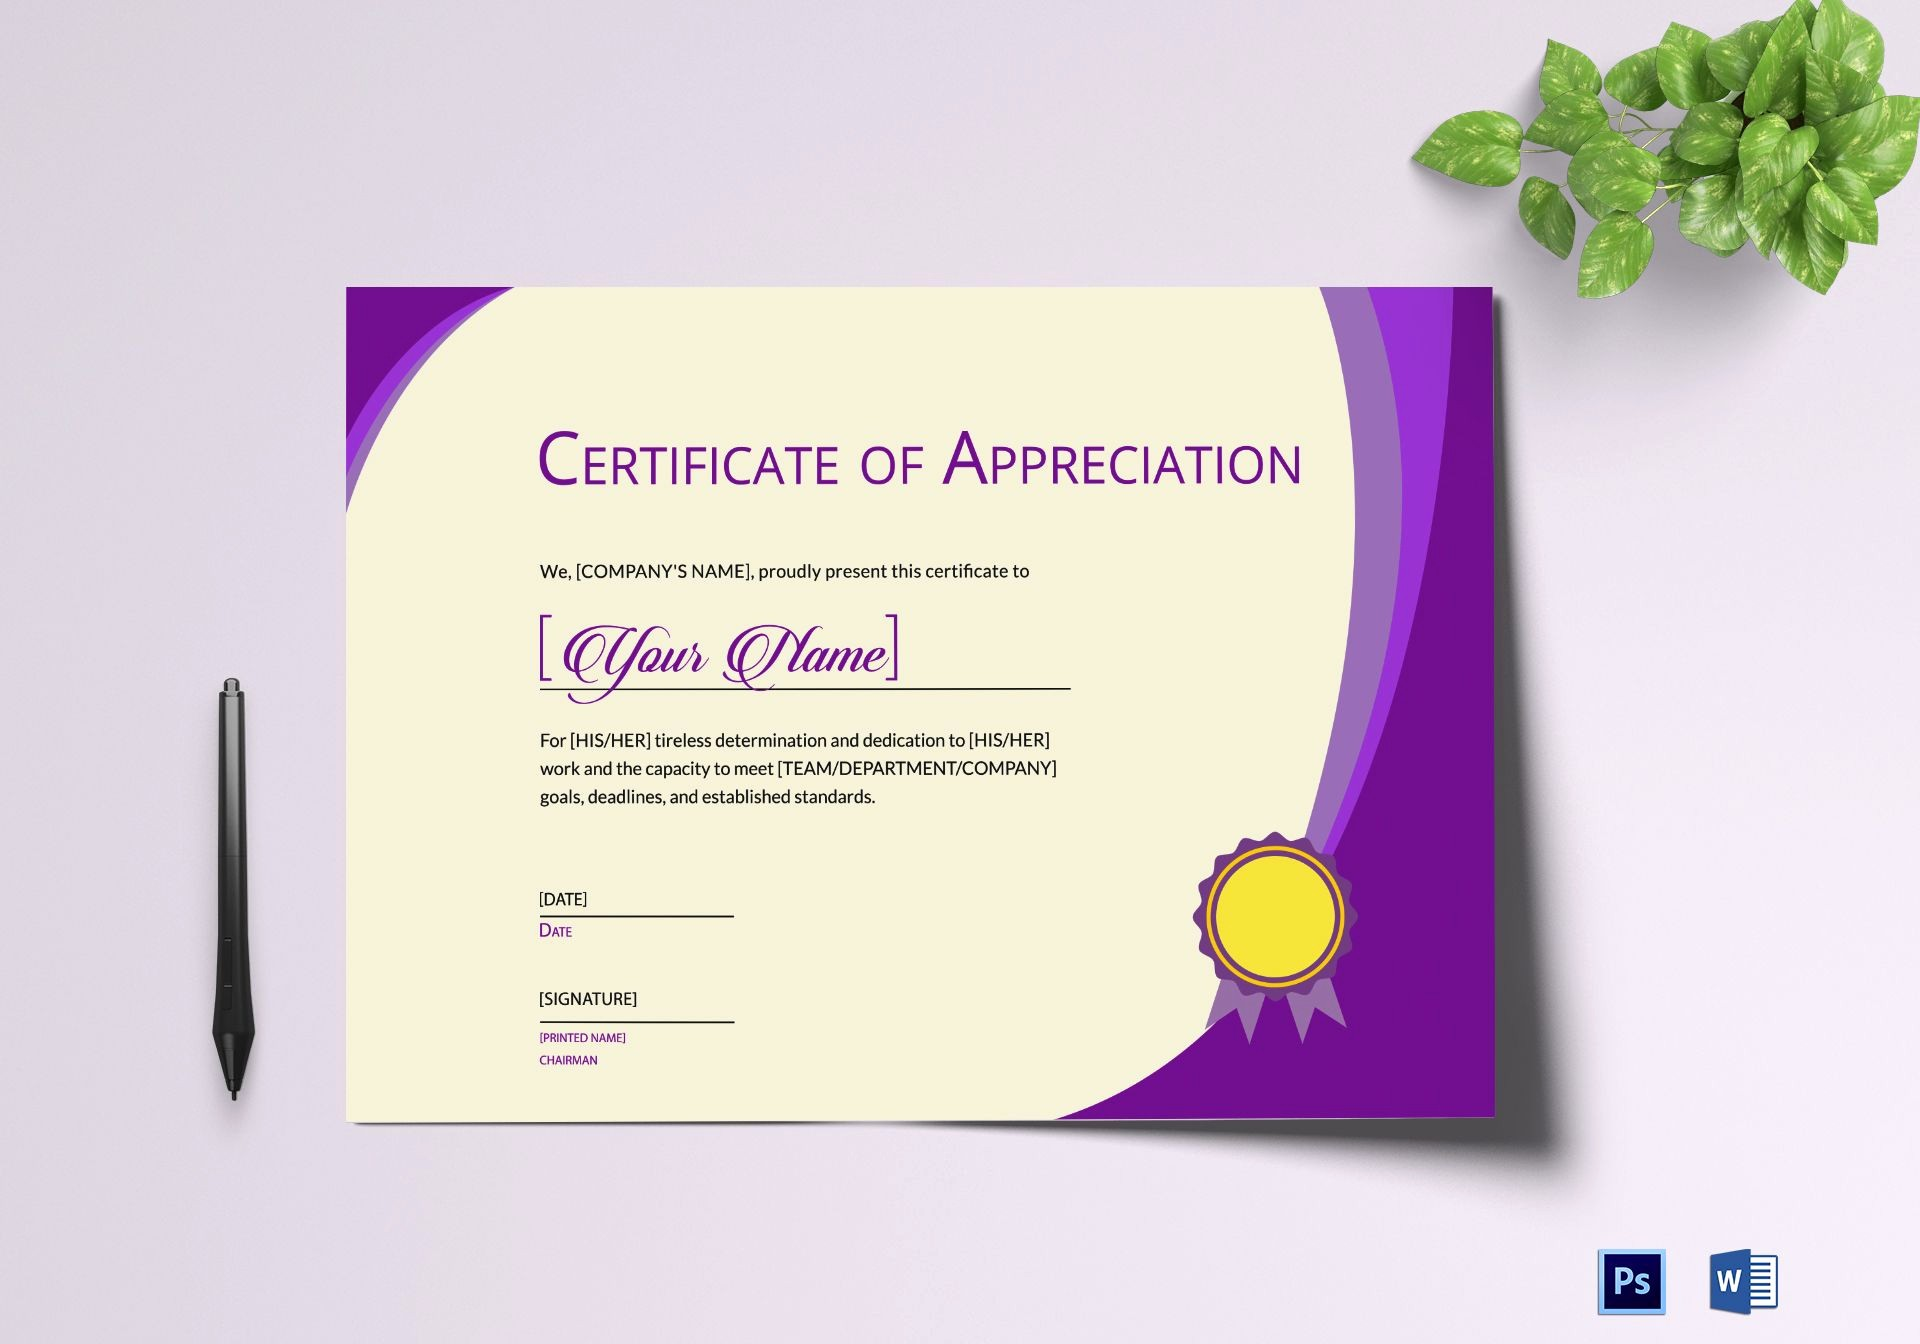 Thank You Certificate Word Template Beautiful Expression Of Thank You Certificate Design Template In Psd